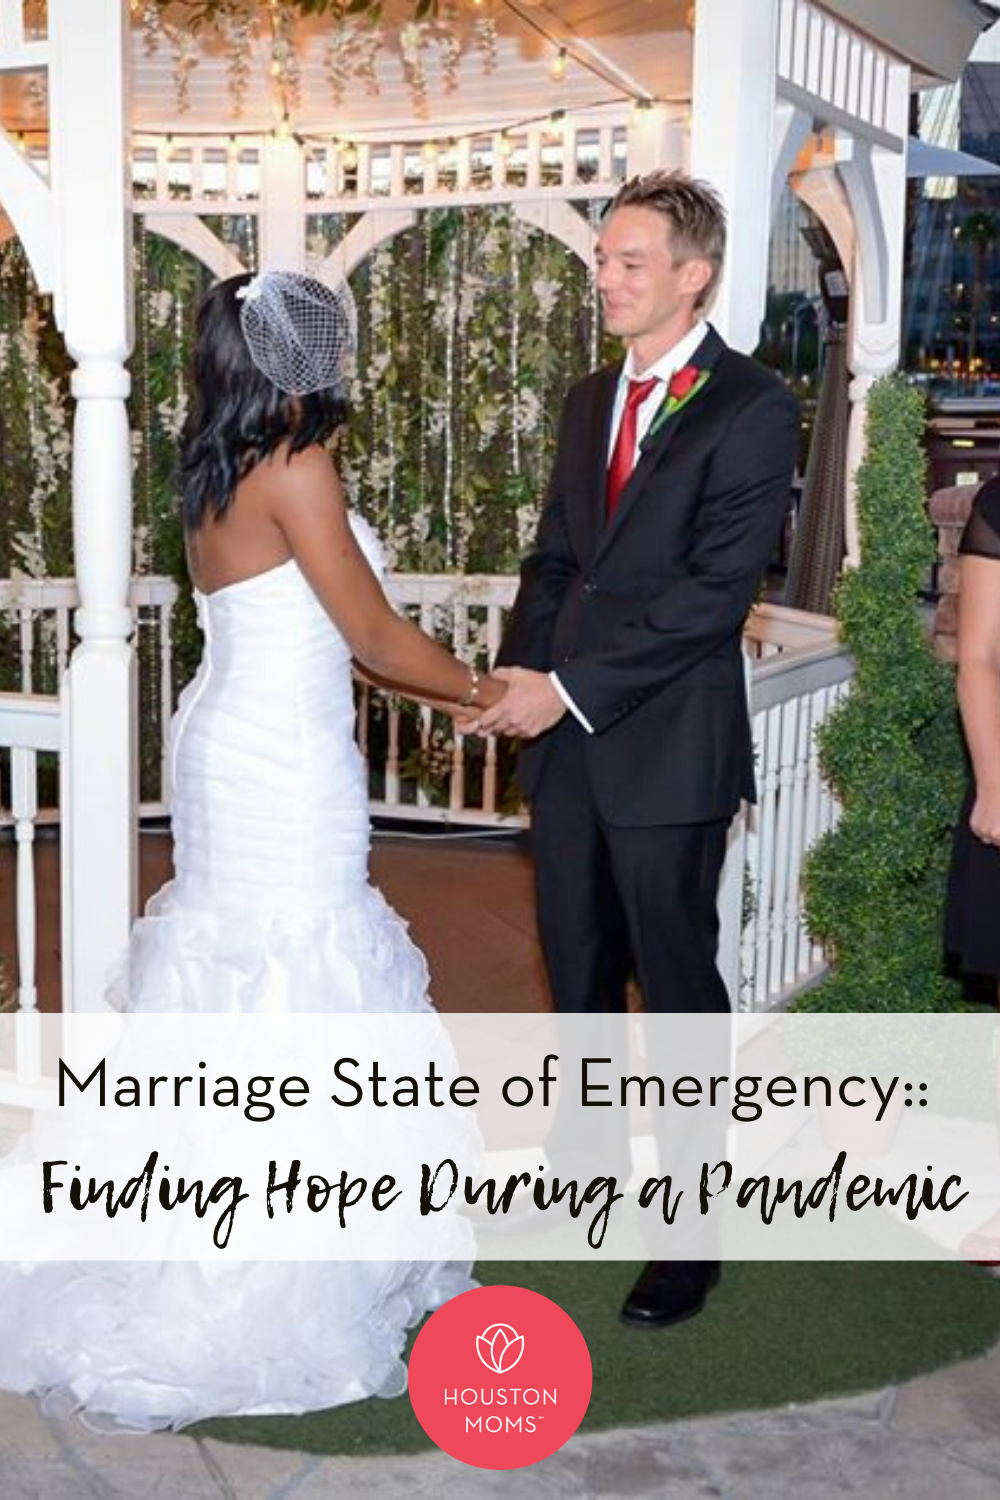 "Houston Moms ""Marriage State of Emergency:: Finding Hope During a Pandemic"" #houstonmoms #houstonmomsblog #momsaroundhouston"